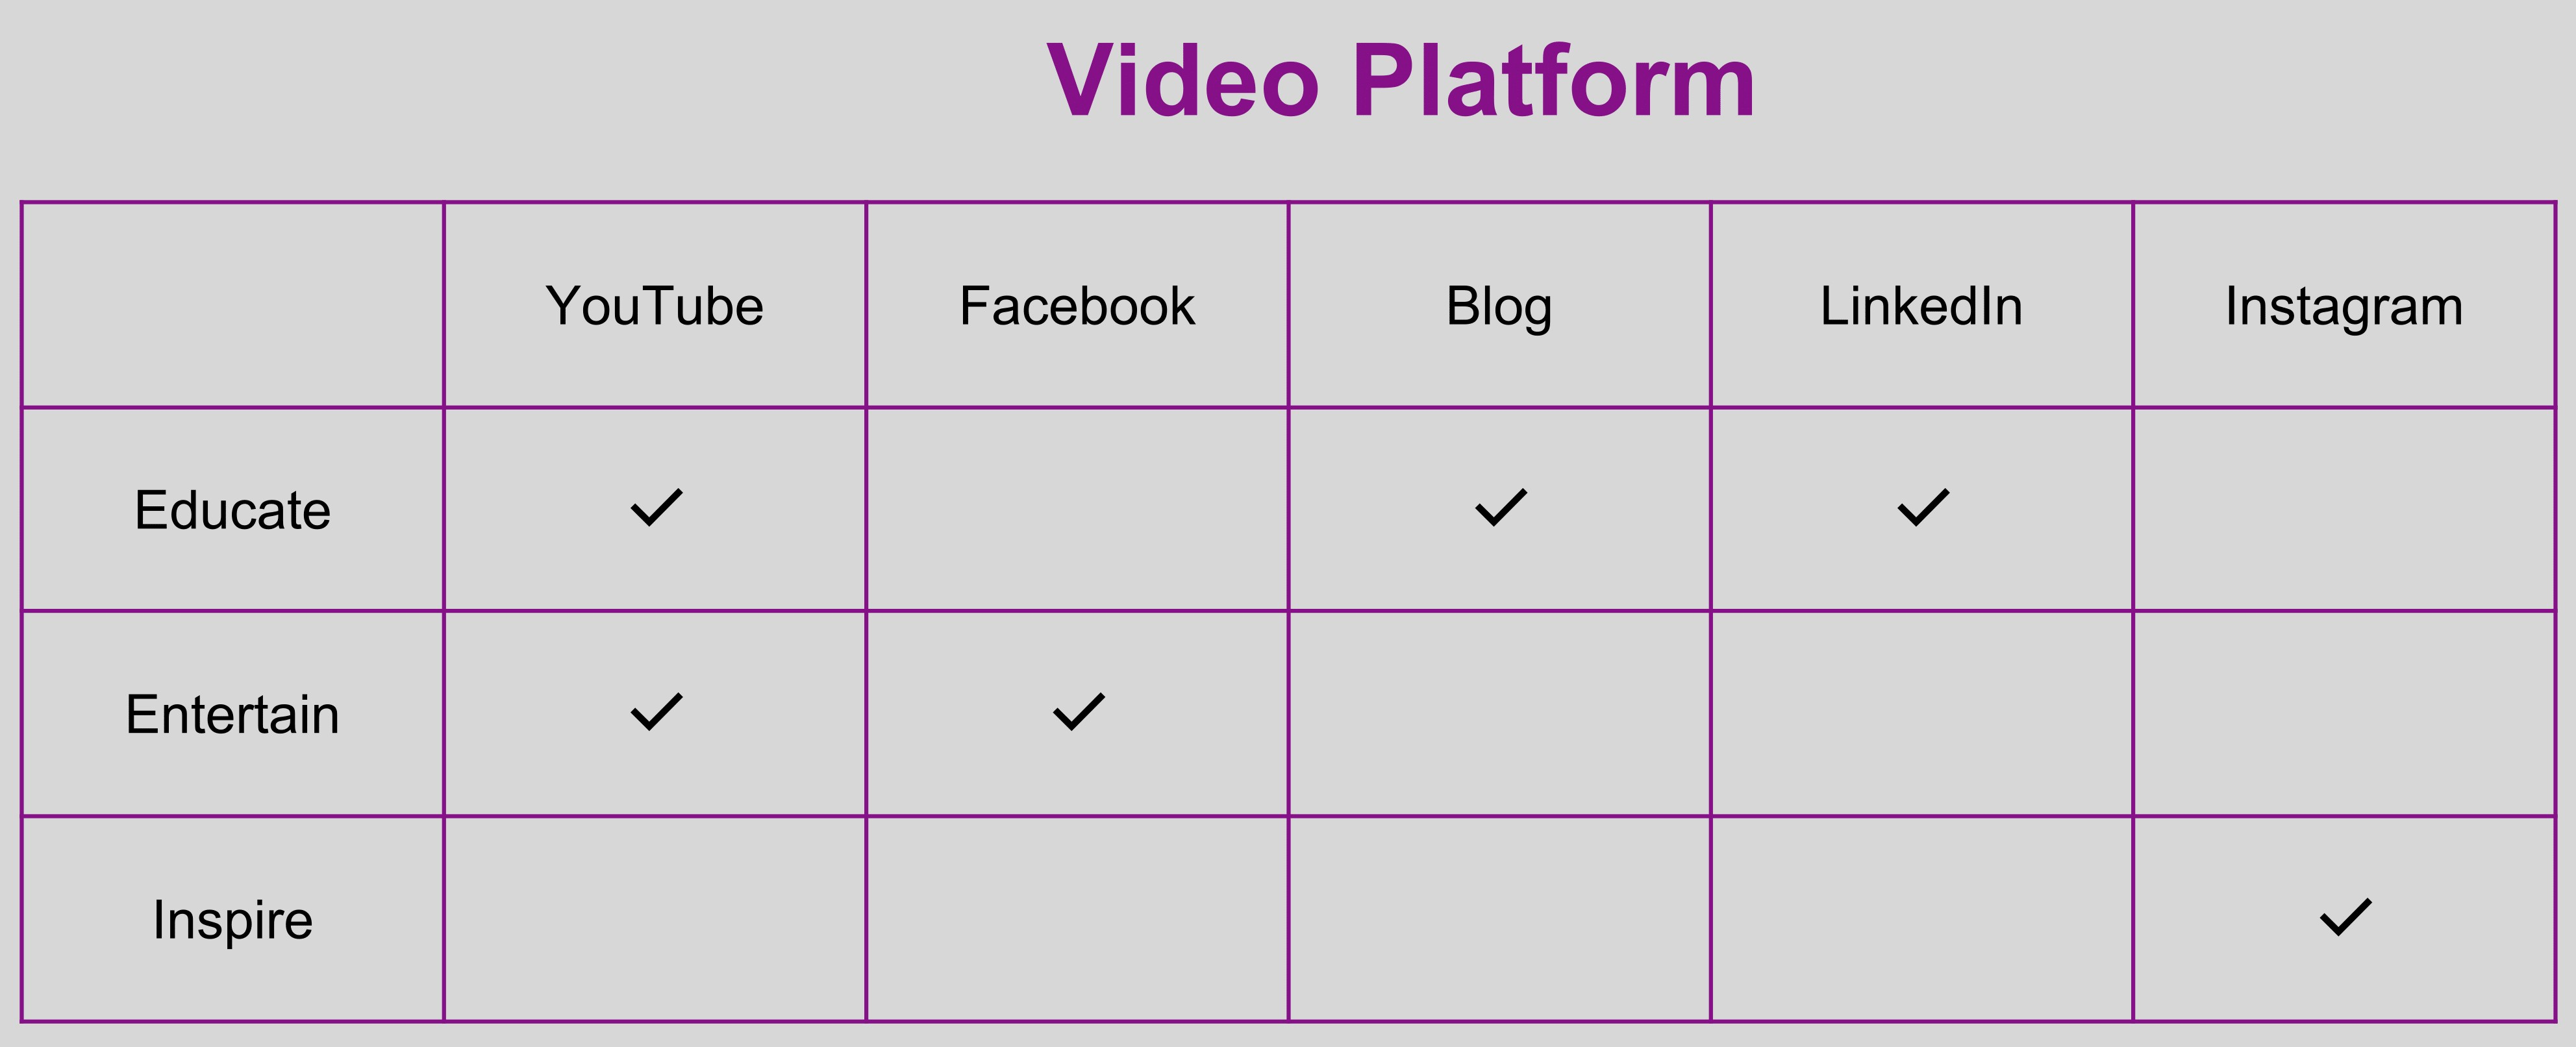 Video Platforms table